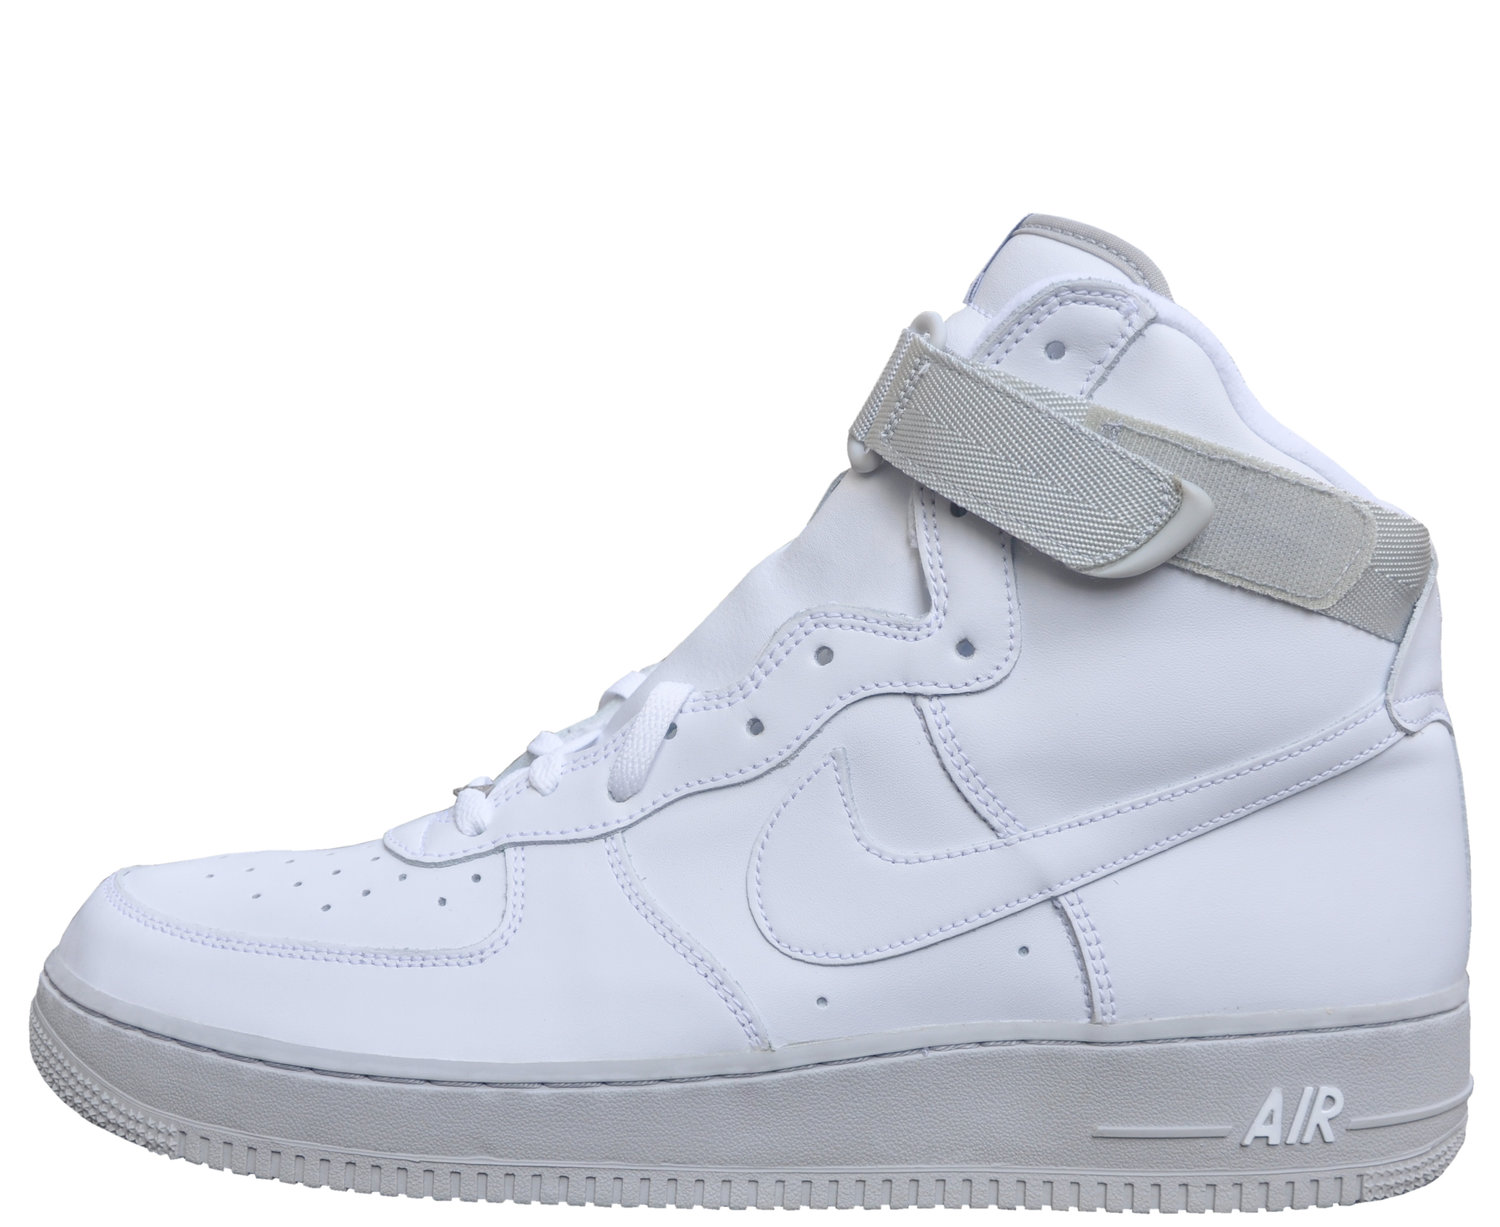 Nike Air Force 1 High White Neutral Grey Size 13 Ds Roots